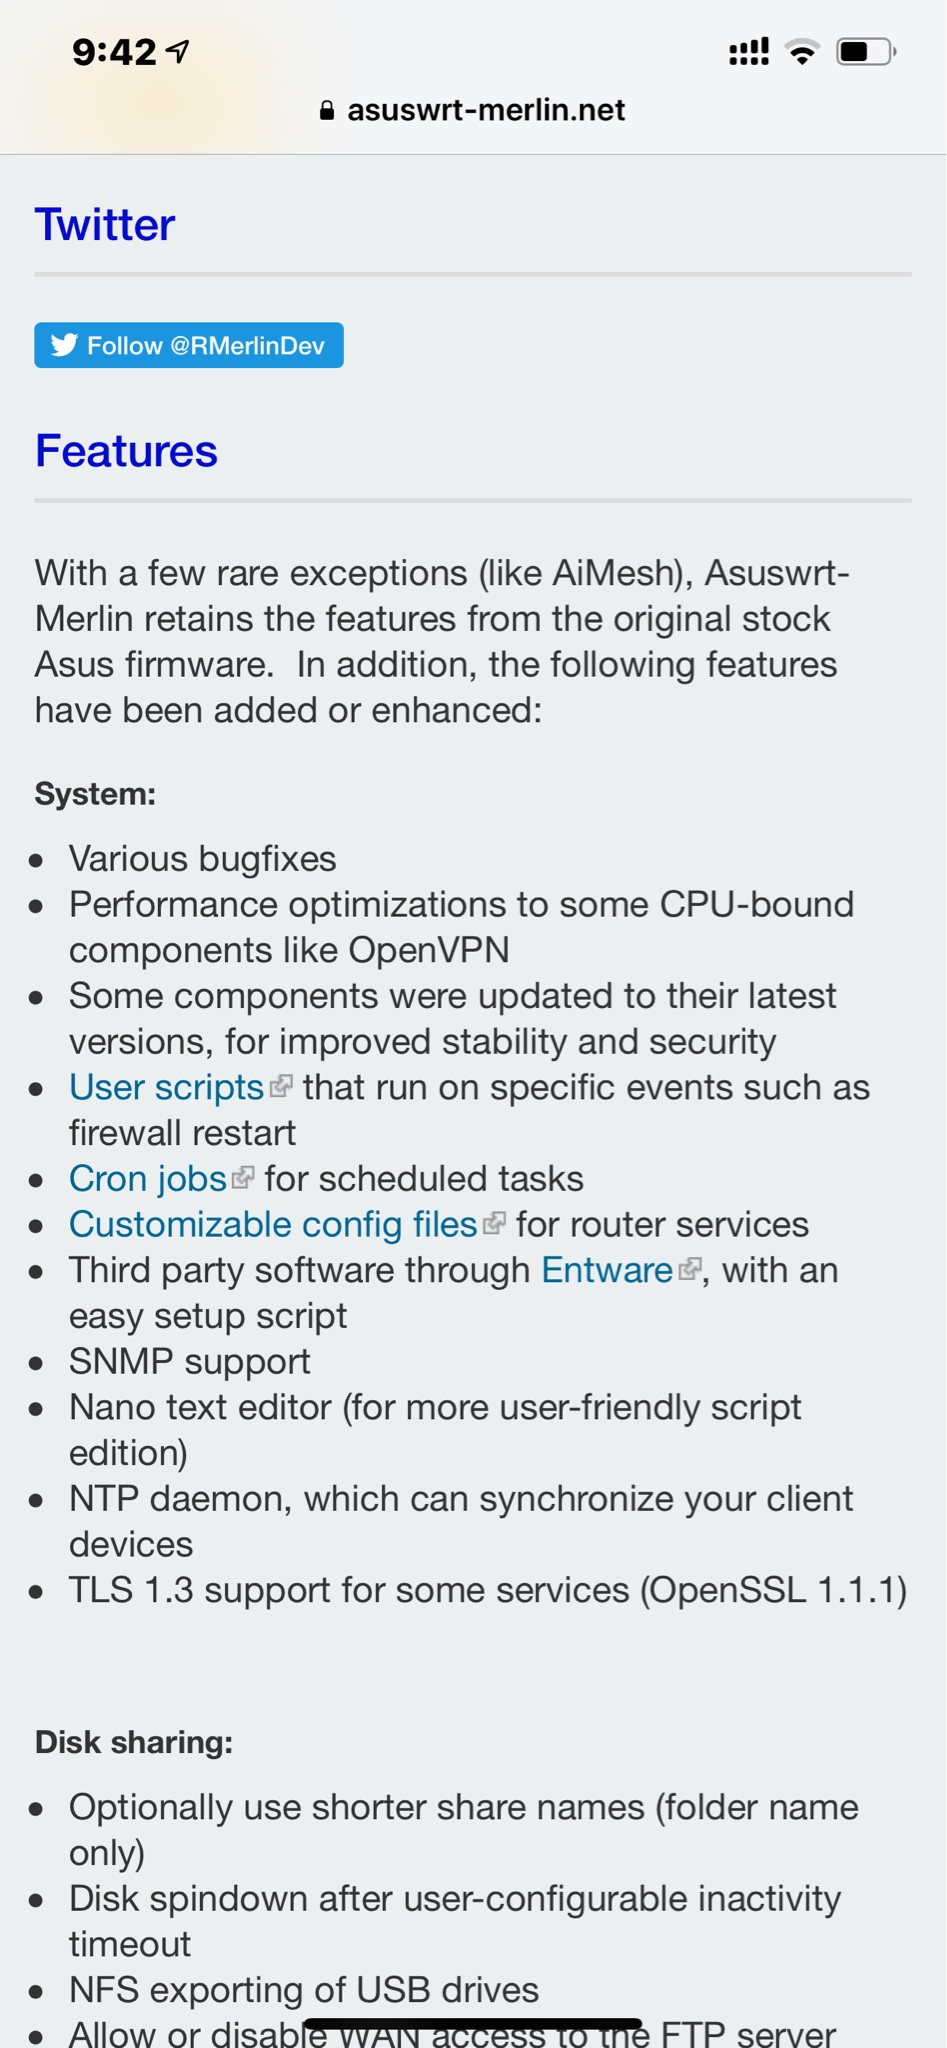 Release] Asuswrt-Merlin 384 13 is now available